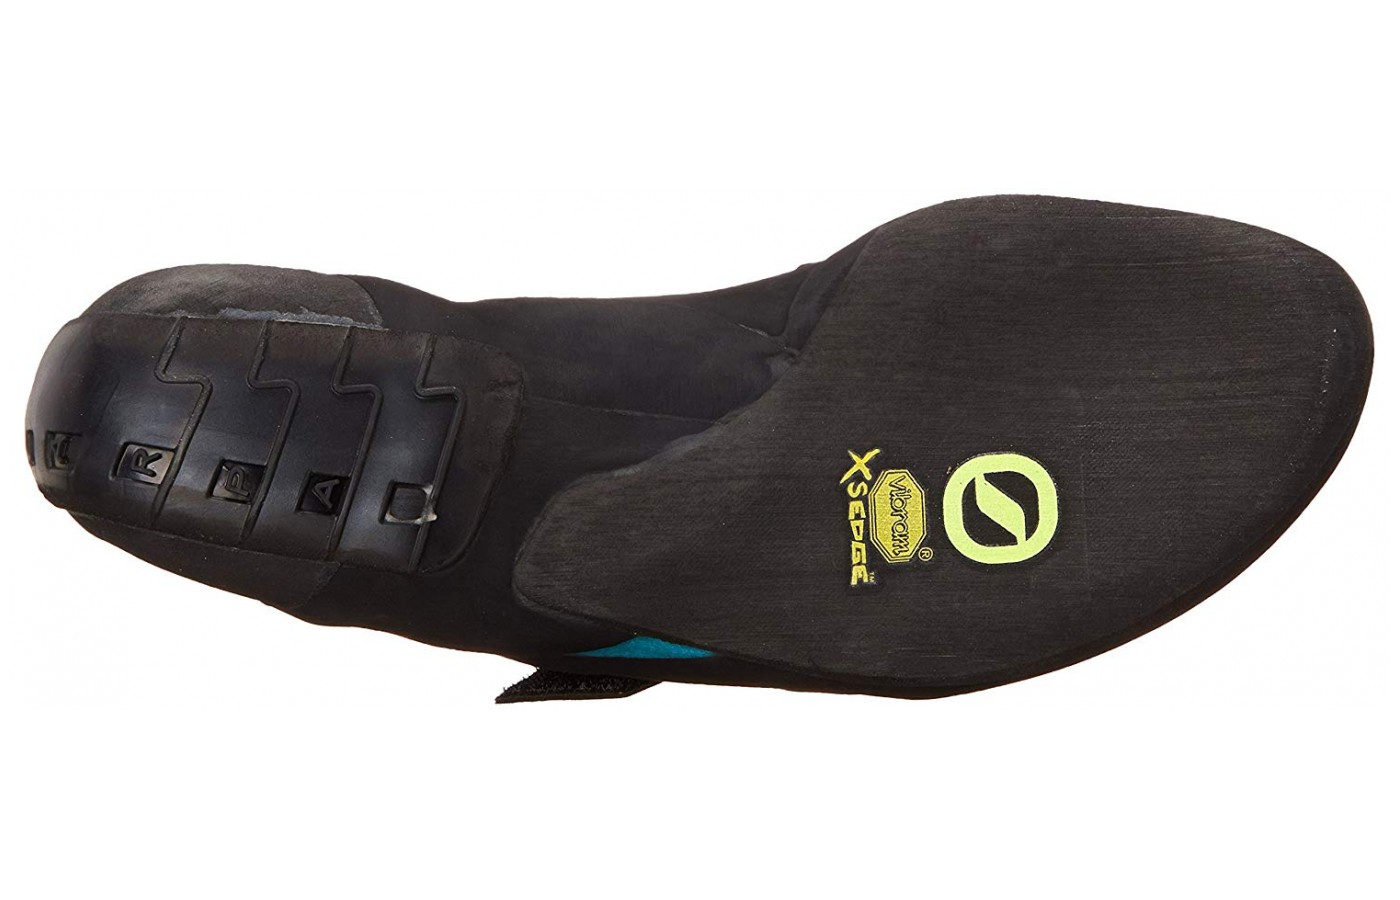 The Vibram XS Edge covers only half the outsole.